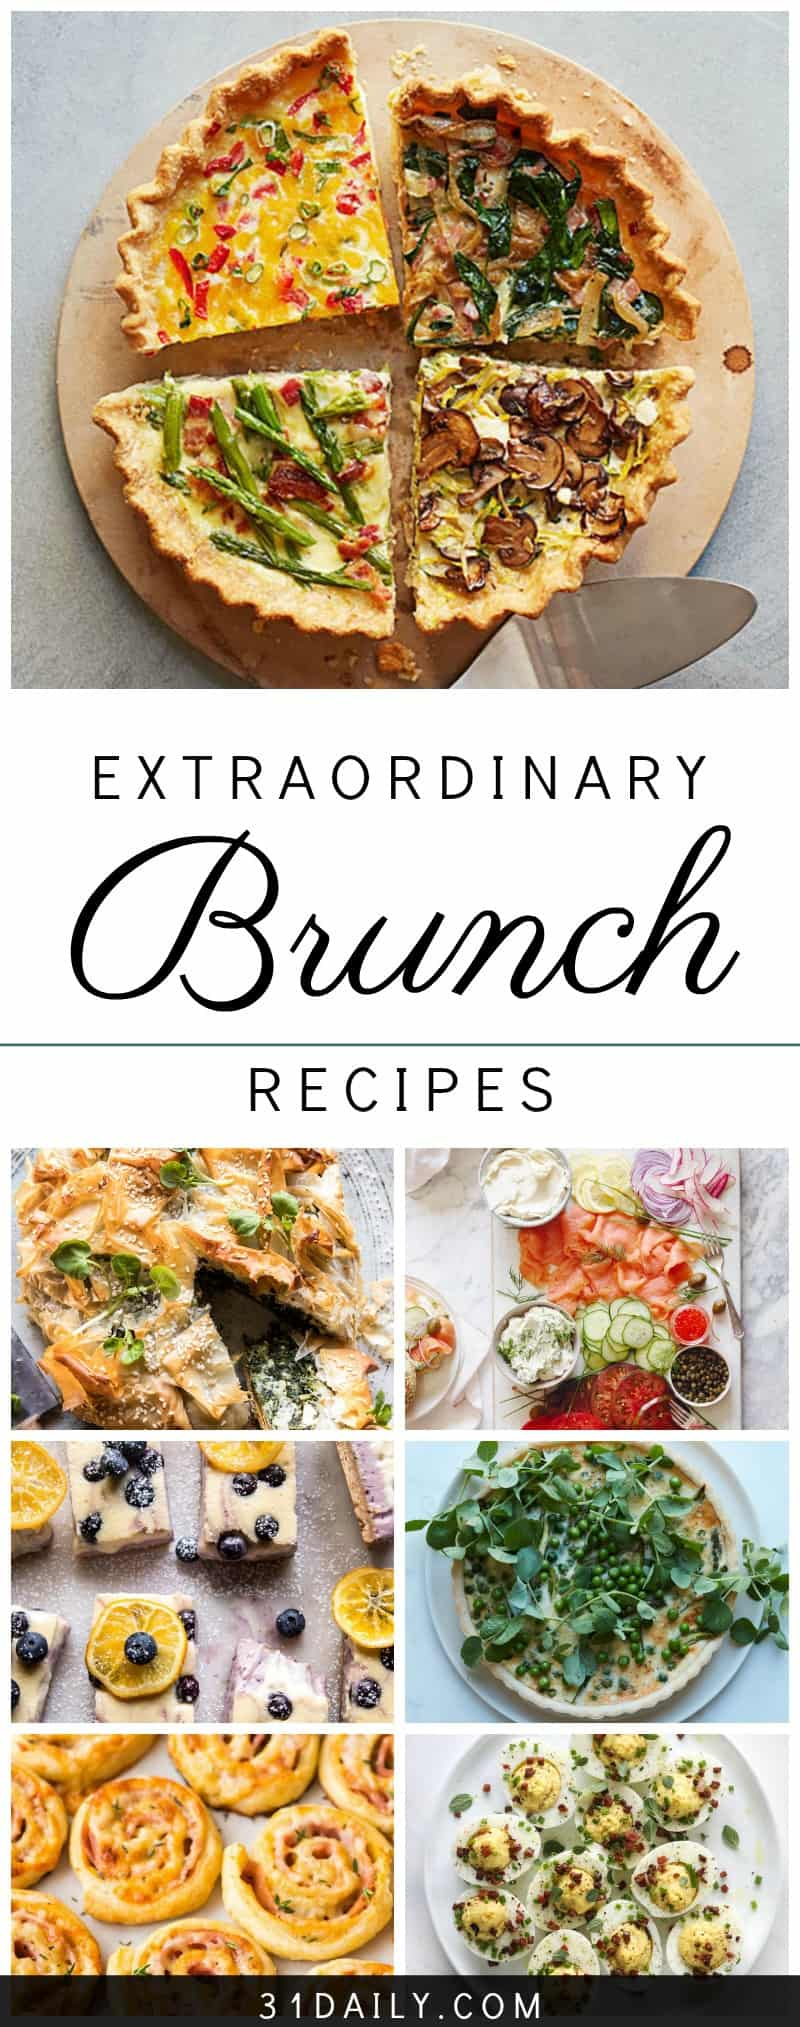 Extraordinary Recipes to Make Your Best Ever Brunch | 31Daily.com